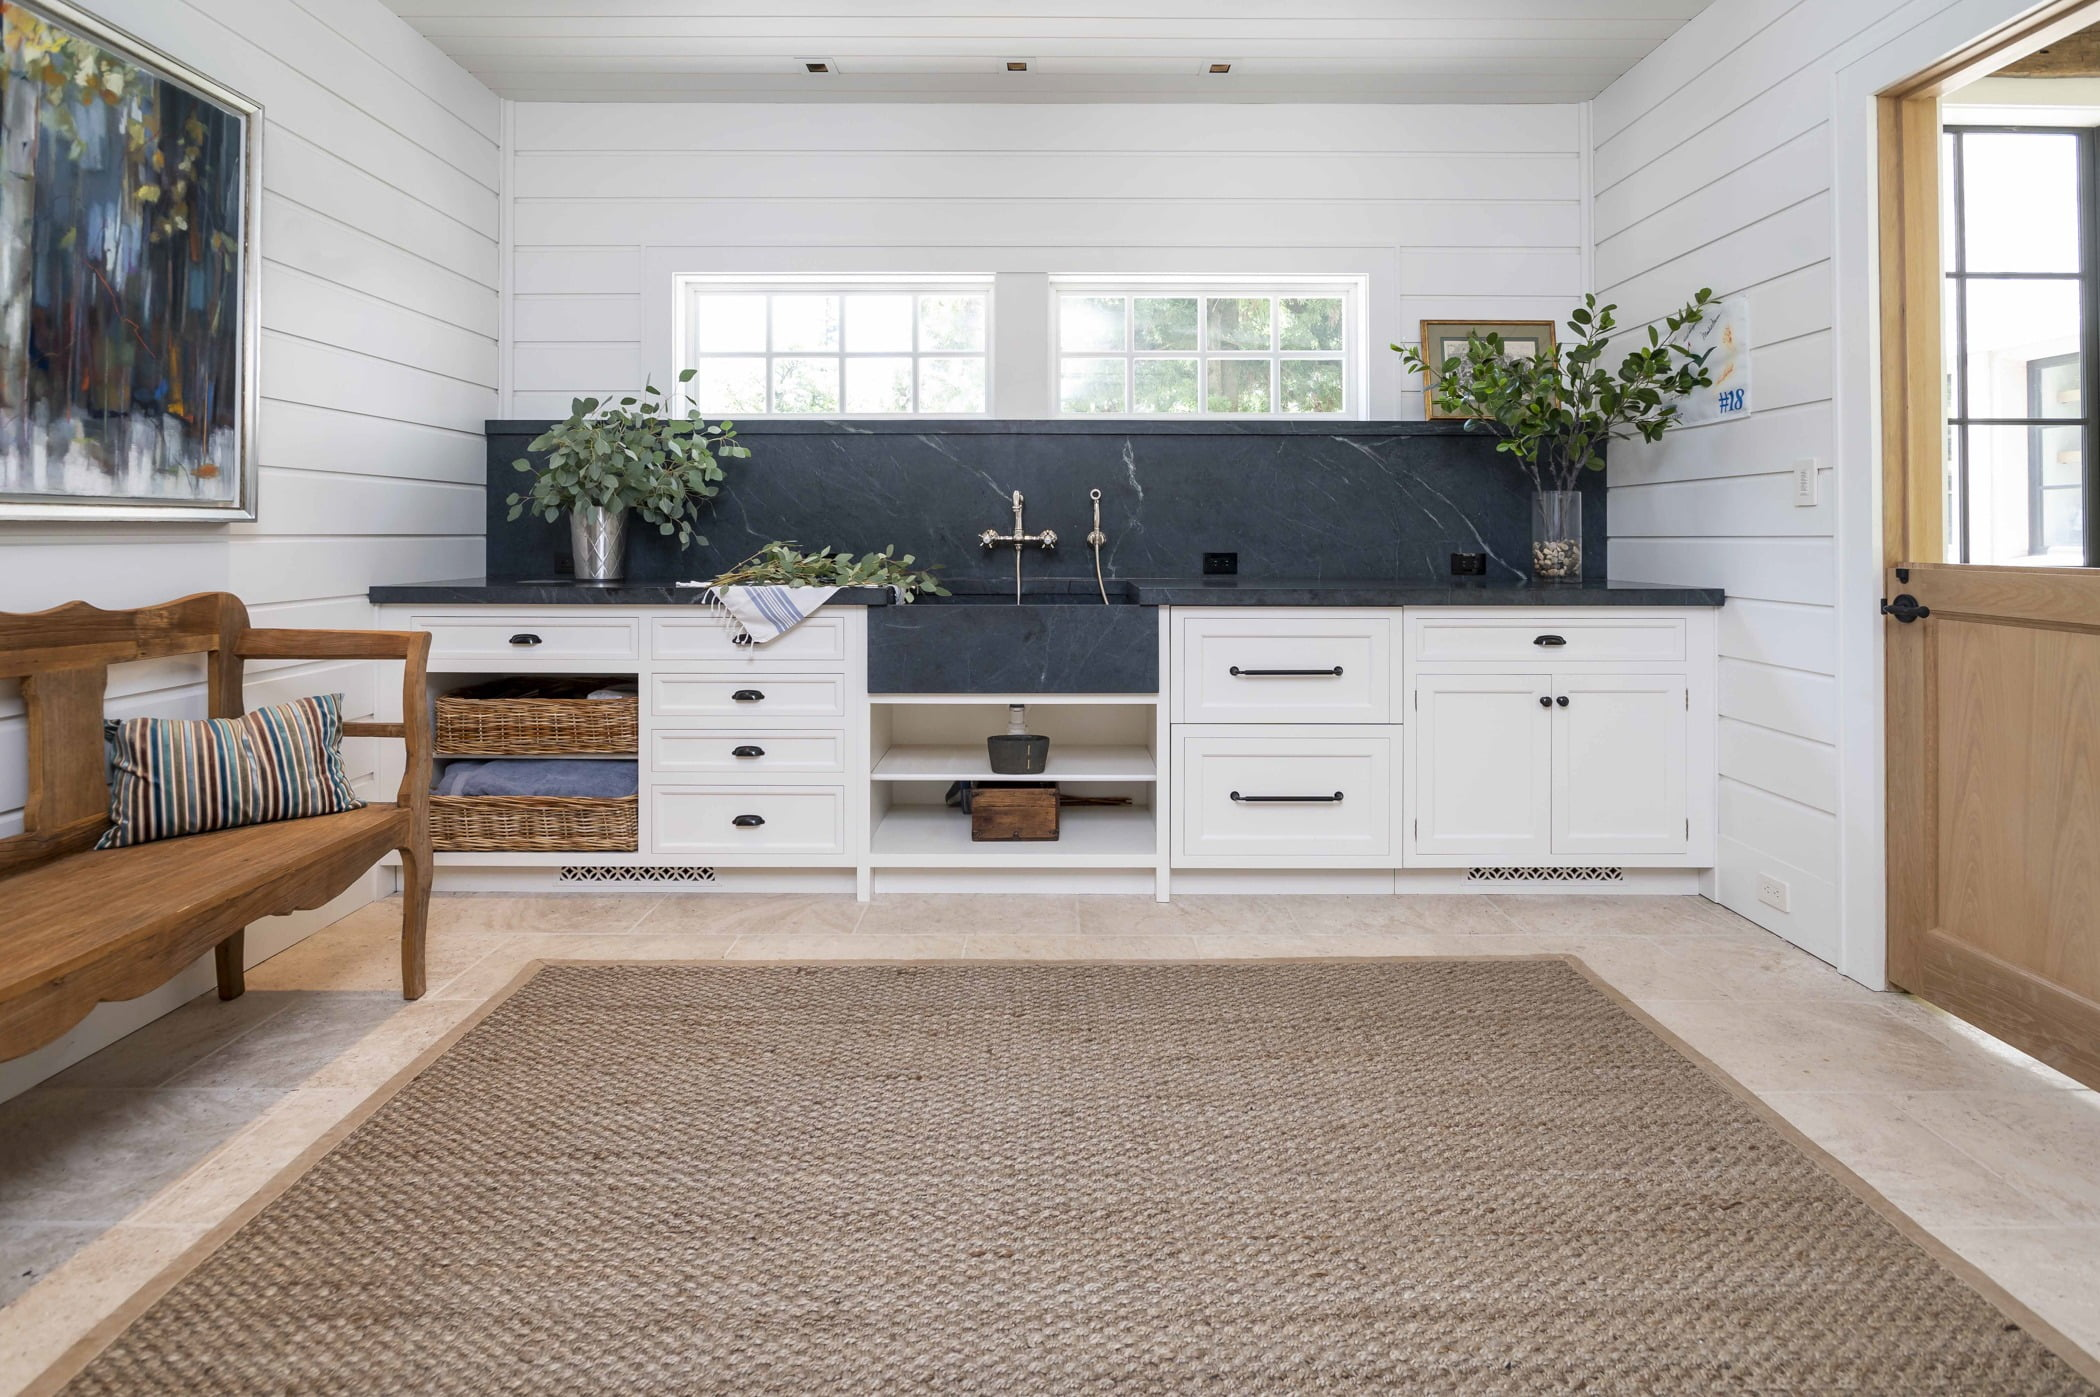 Transitional sink/washroom space with white cabinetry, grey-blue countertops, and white paneling on walls and ceiling